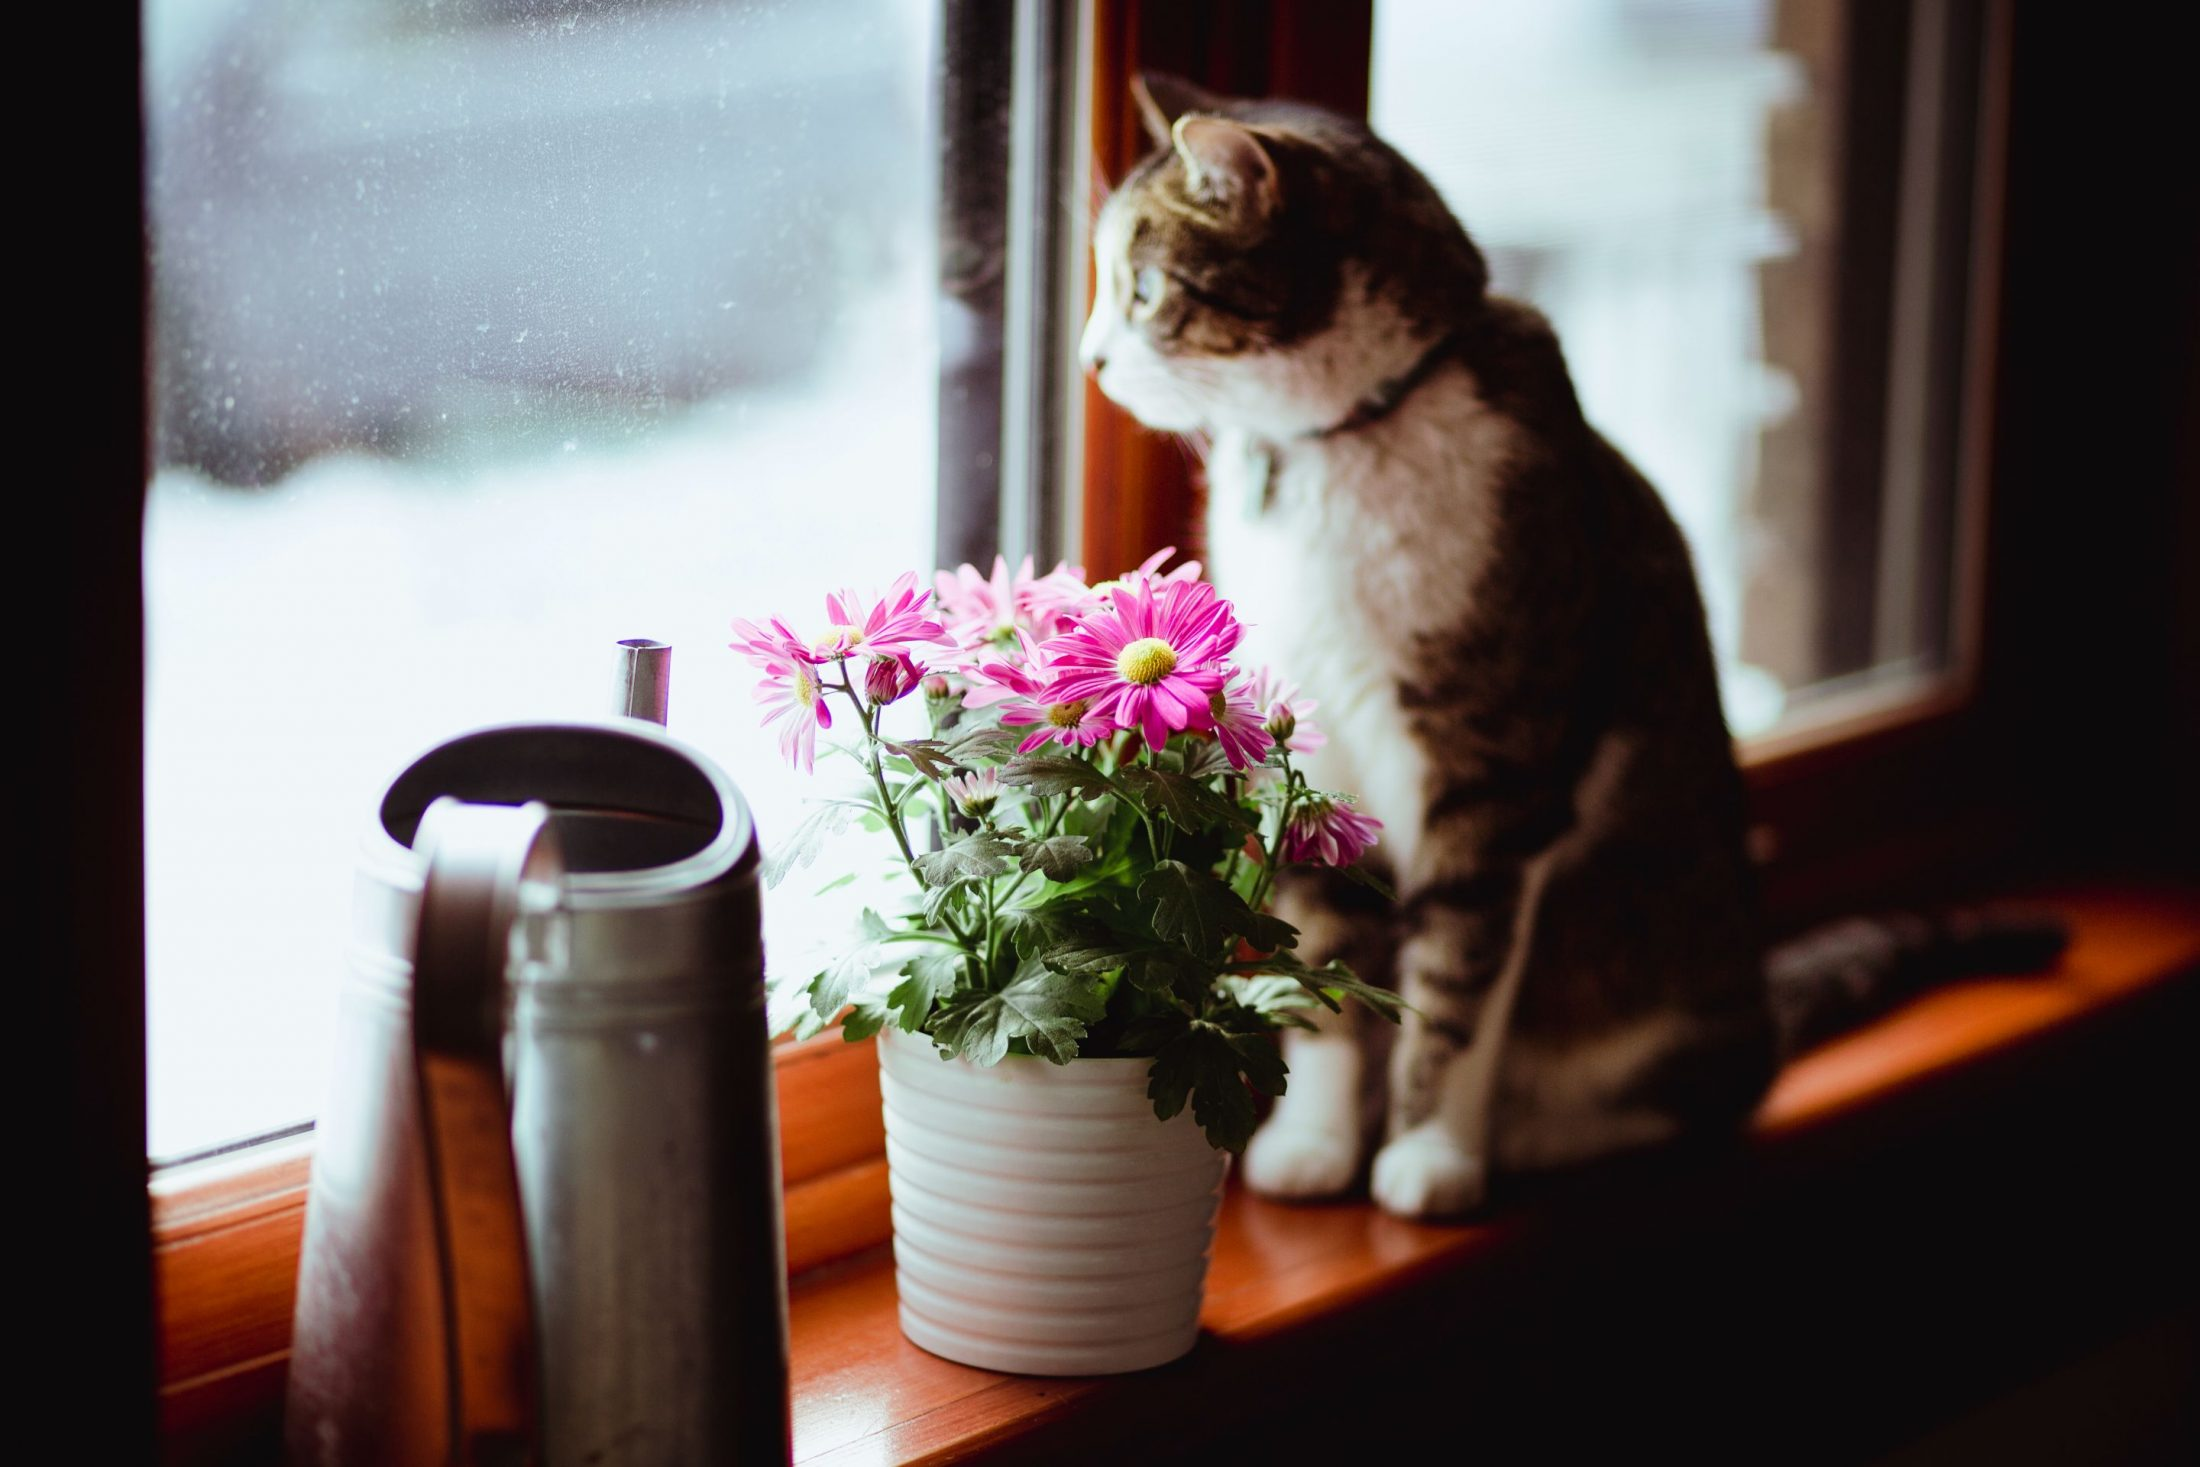 A cat and a houseplant.